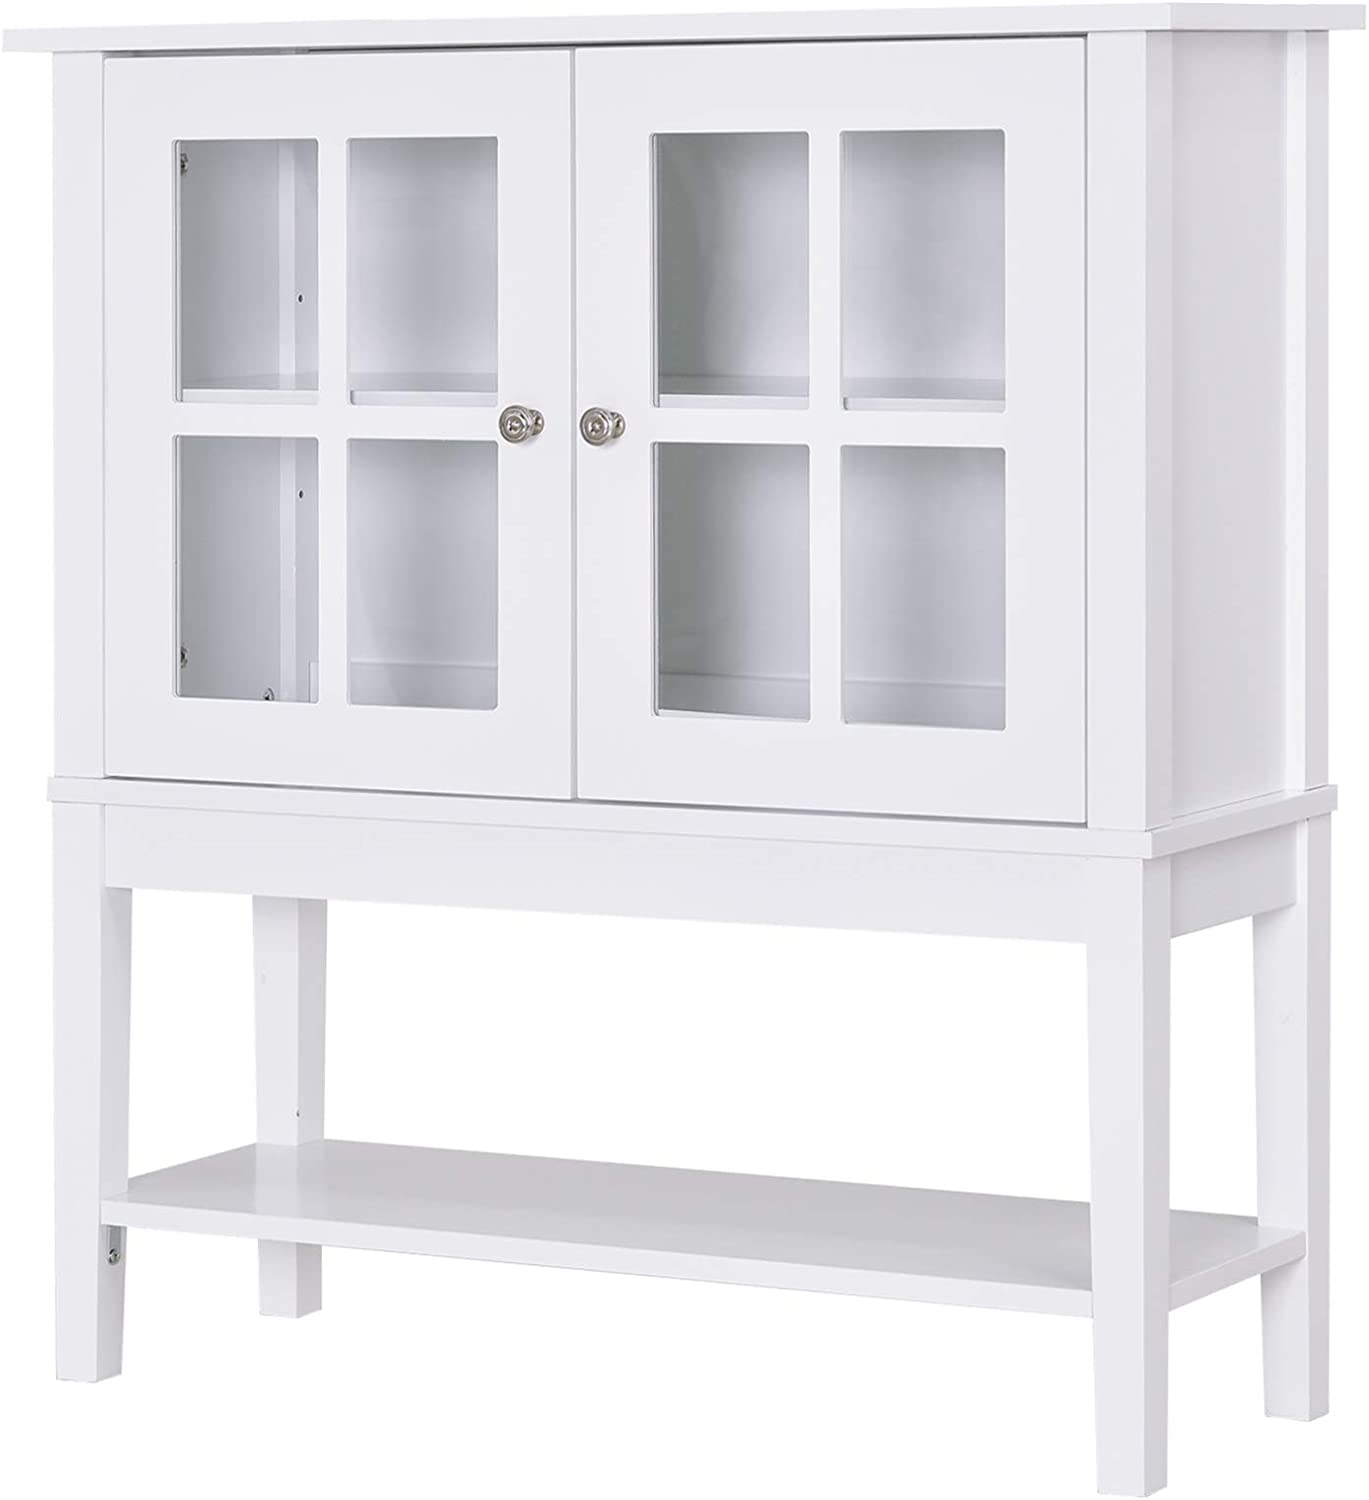 HOMCOM Modern Kitchen Credenza & Sideboard Buffet Table Storage Cabinet with 2 Swinging Glass Doors & Ample Storage Space, White